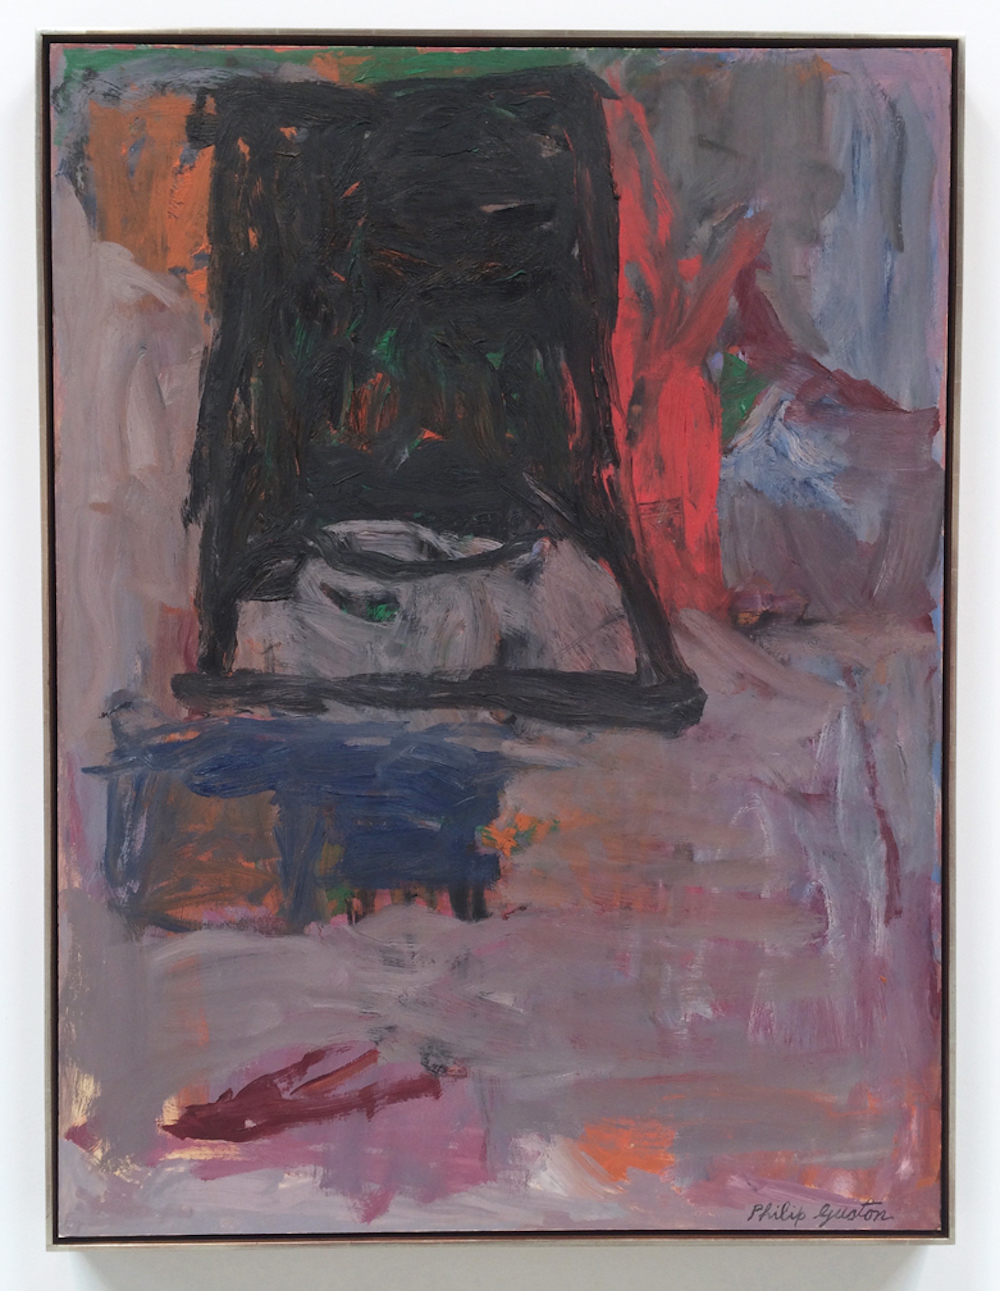 8) Philip Guston, Slope II, 1961, oil on paper mounted on canvas, 40 x 30 in., 2016, Hauser & Wirth, NYC